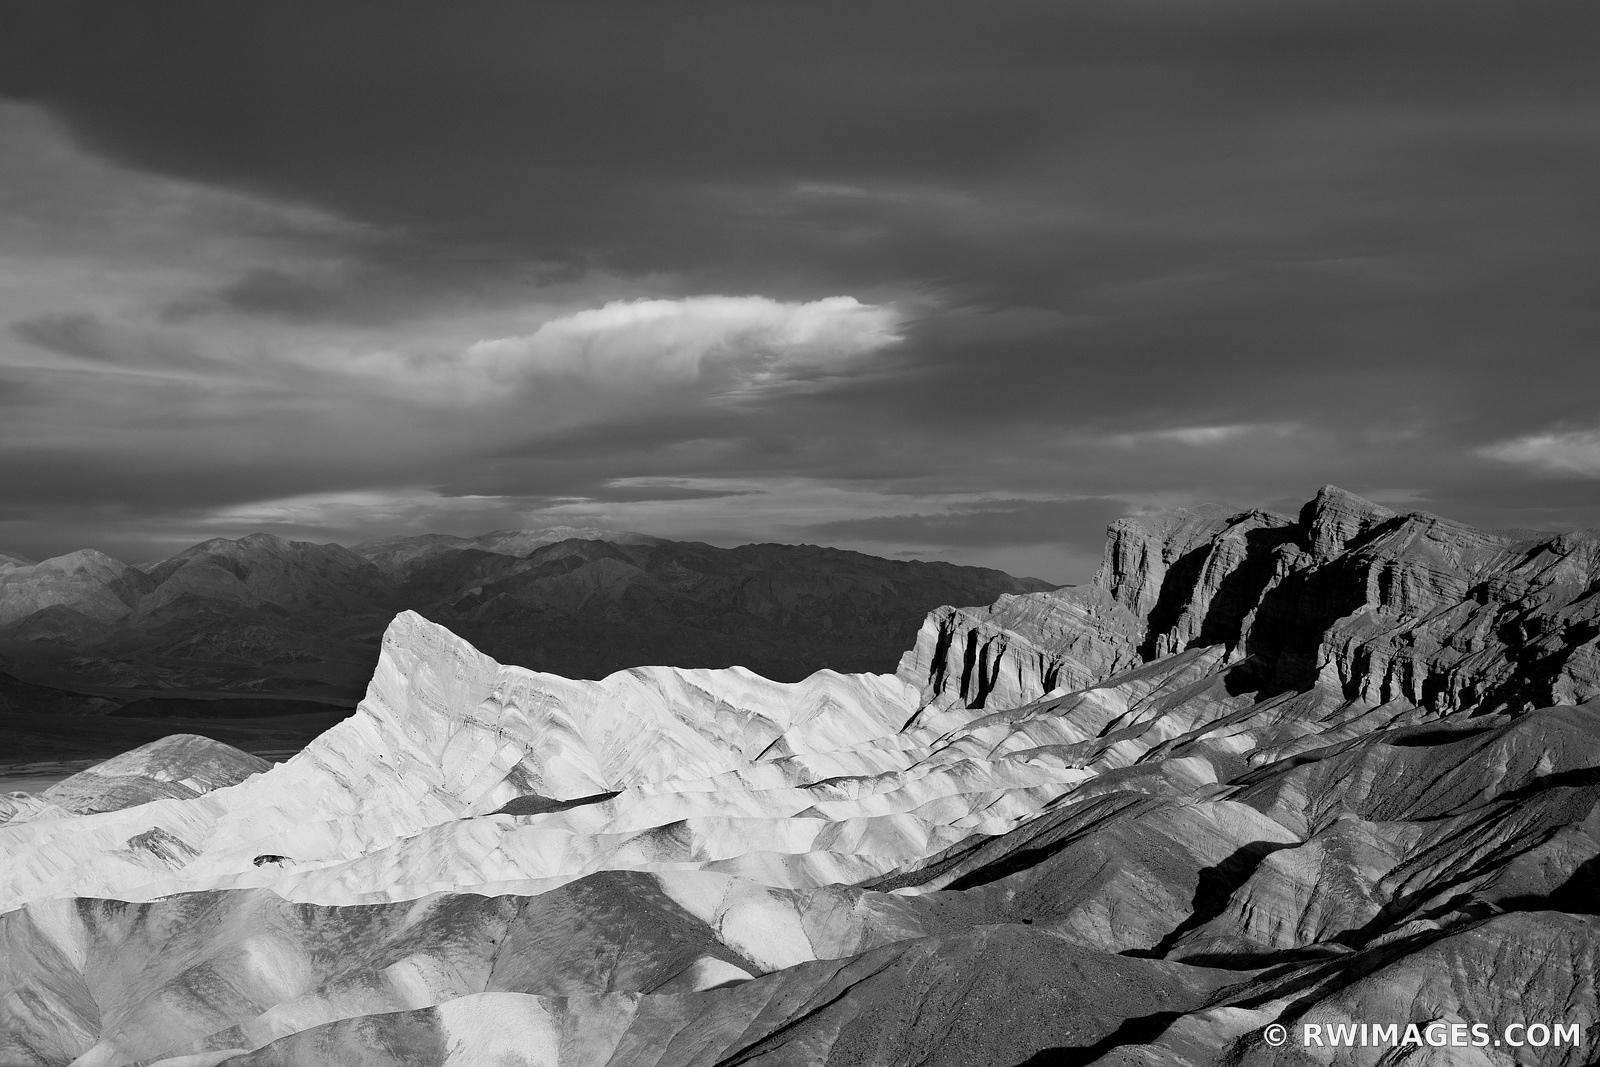 MANLY BEACON ZABRISKIE POINT SUNRISE DEATH VALLEY CALIFORNIA BLACK AND WHITE